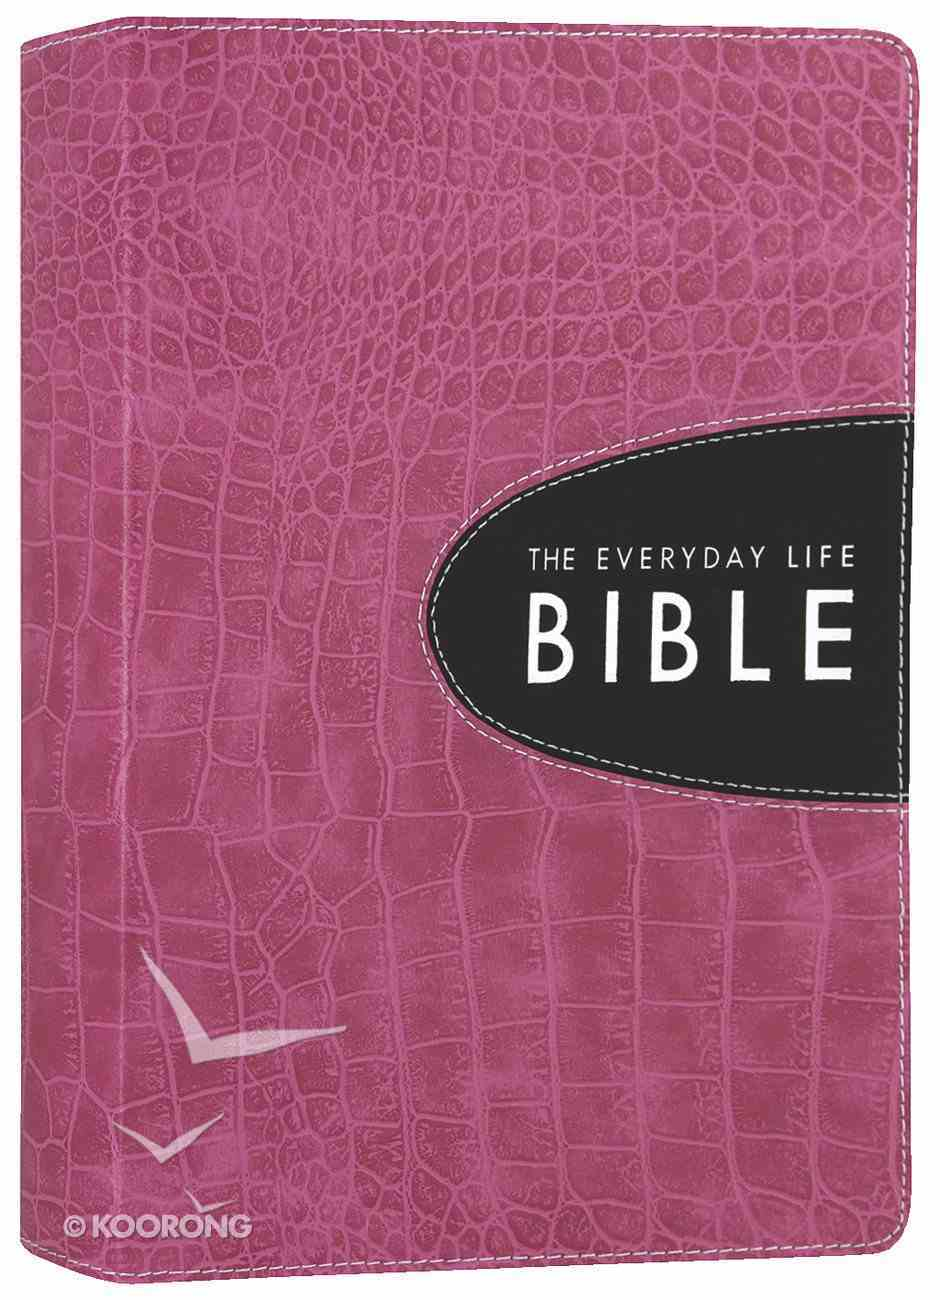 Amplified Everyday Life Bible, the Pink With Espresso Inset Imitation Leather